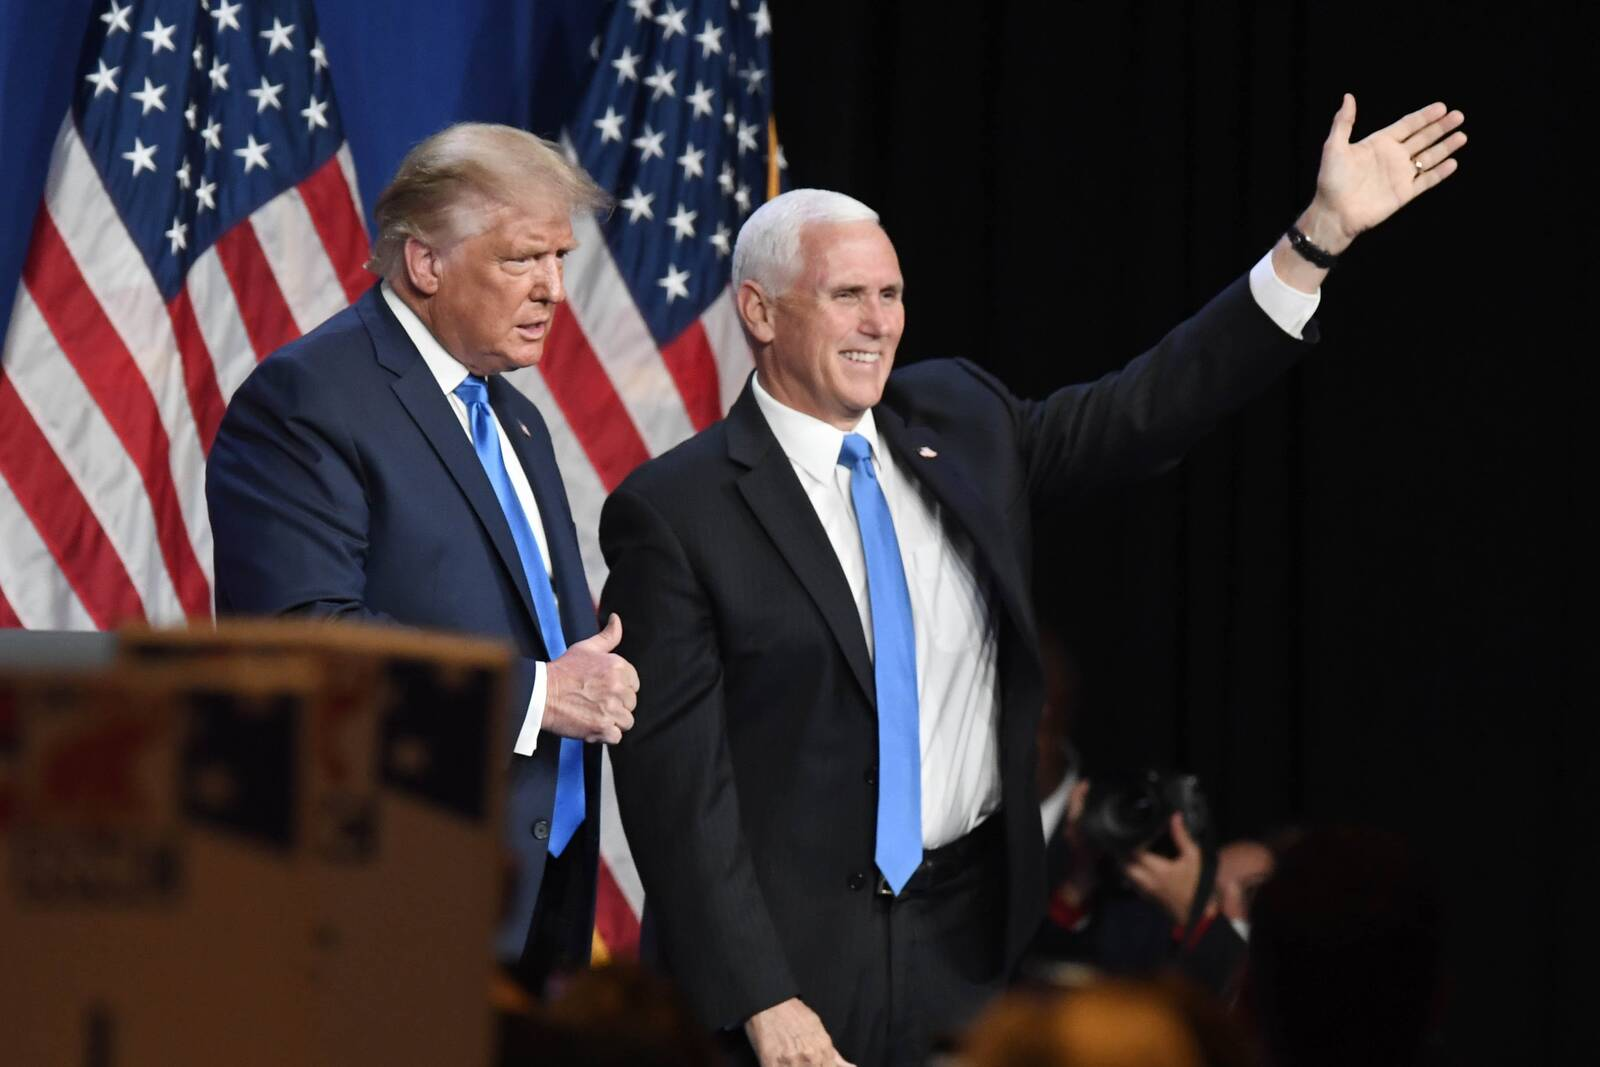 President Donald Trump and Vice President Mike Pence greet delegates on the first day of the Republican National Convention at the Charlotte Convention Center on Aug. 24, 2020 in Charlotte, North Carolina. Credit: David T. Foster III-Pool/Getty Images